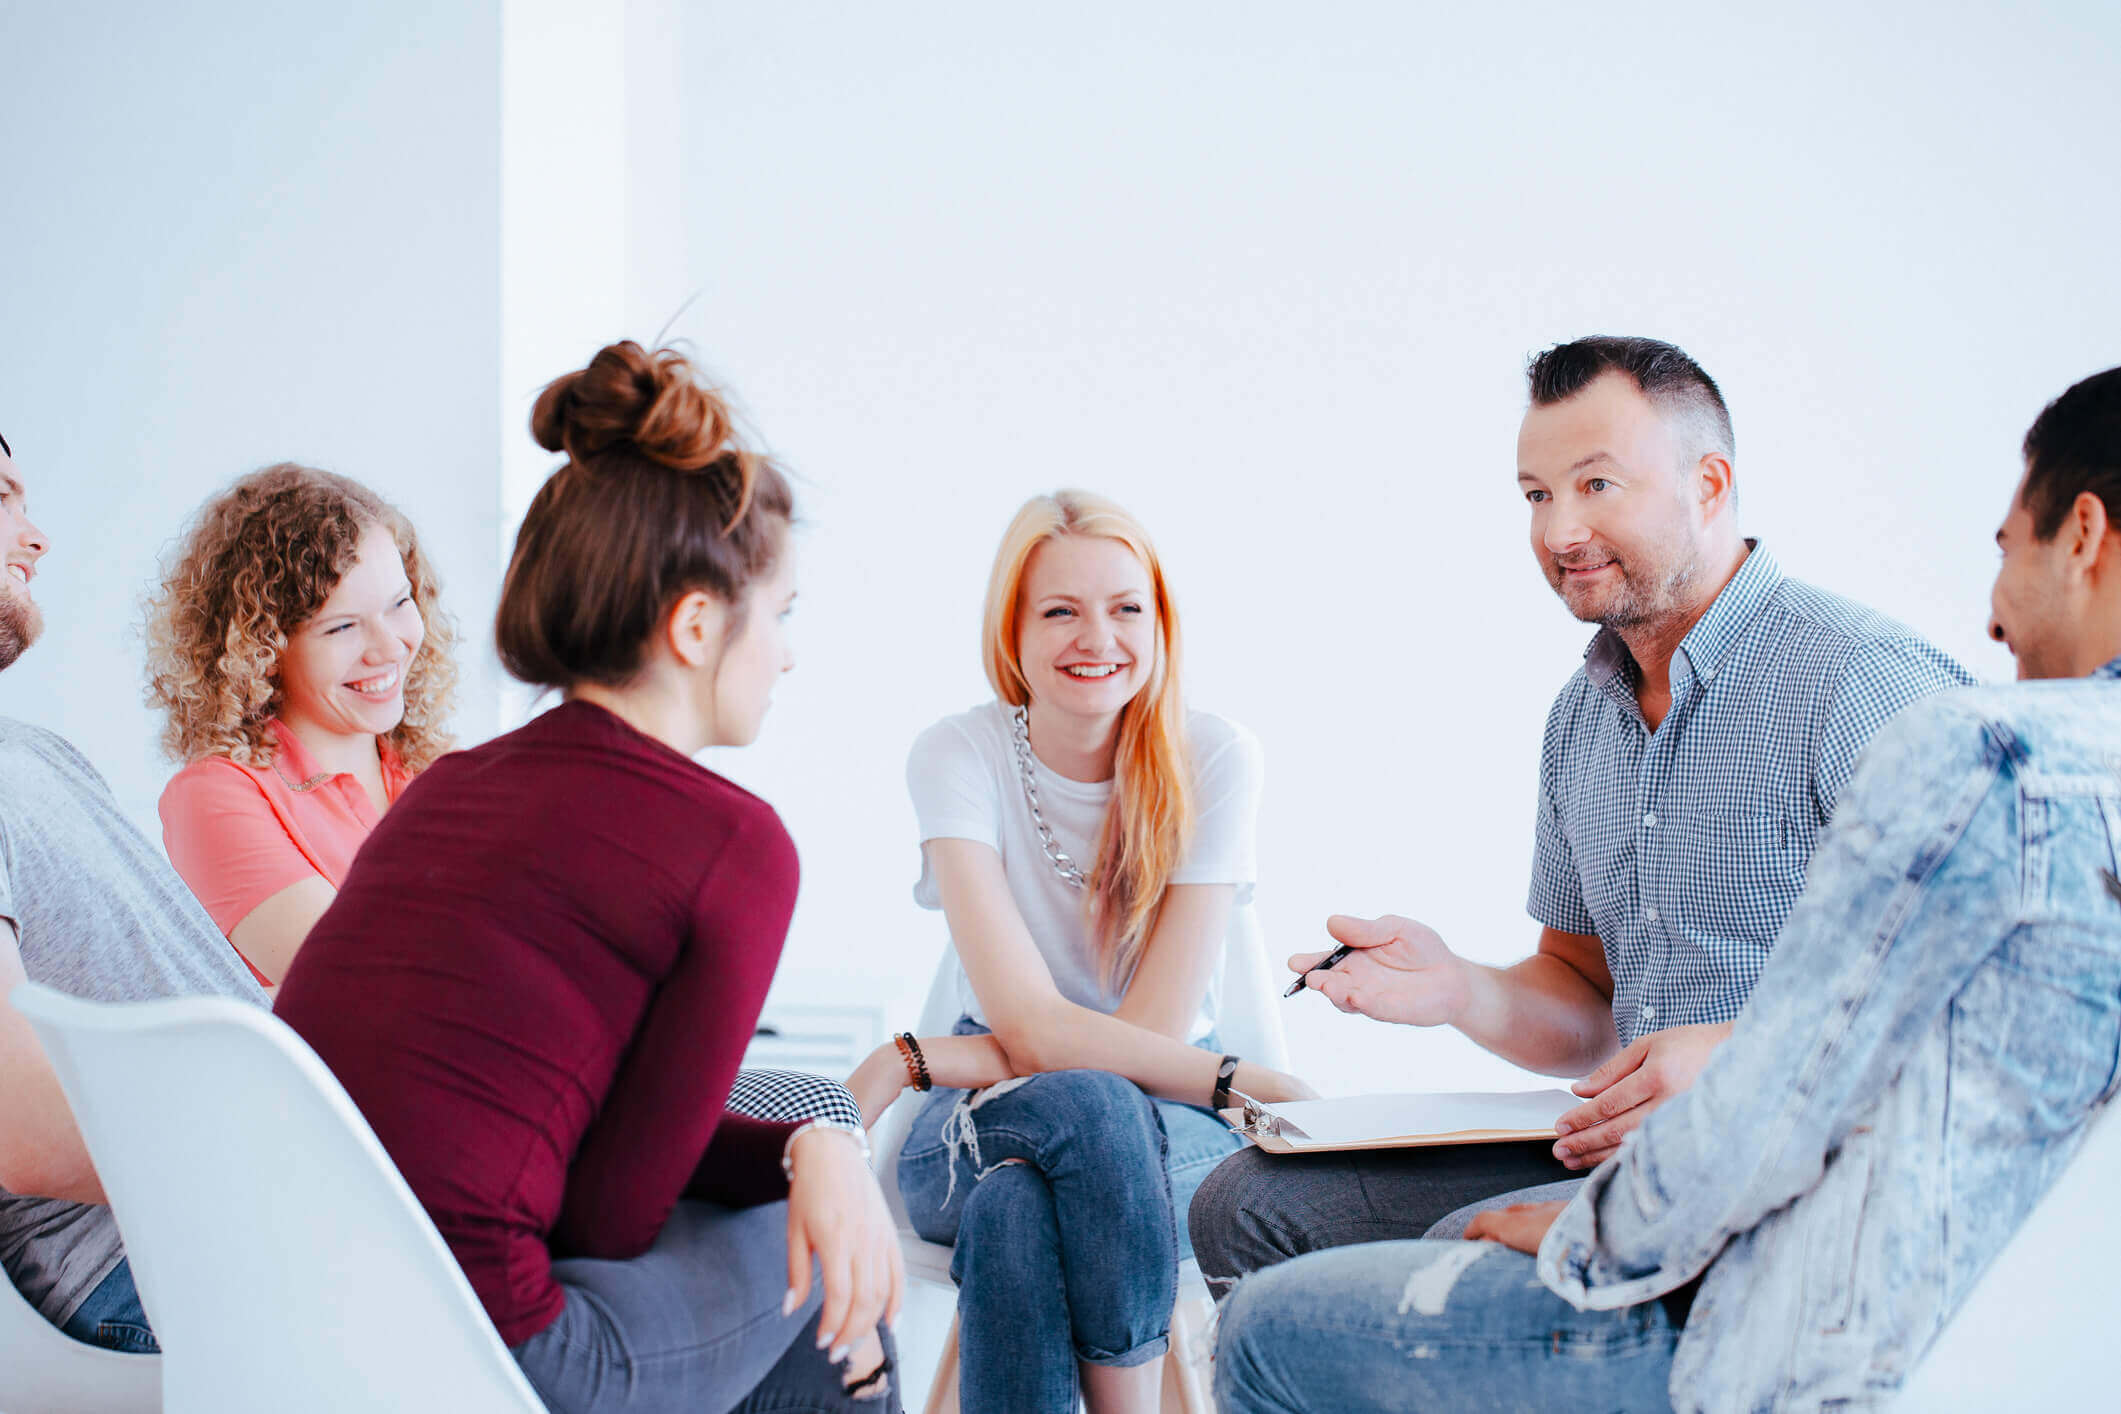 counselling, career, study, help people, life change, supportive, group therapy